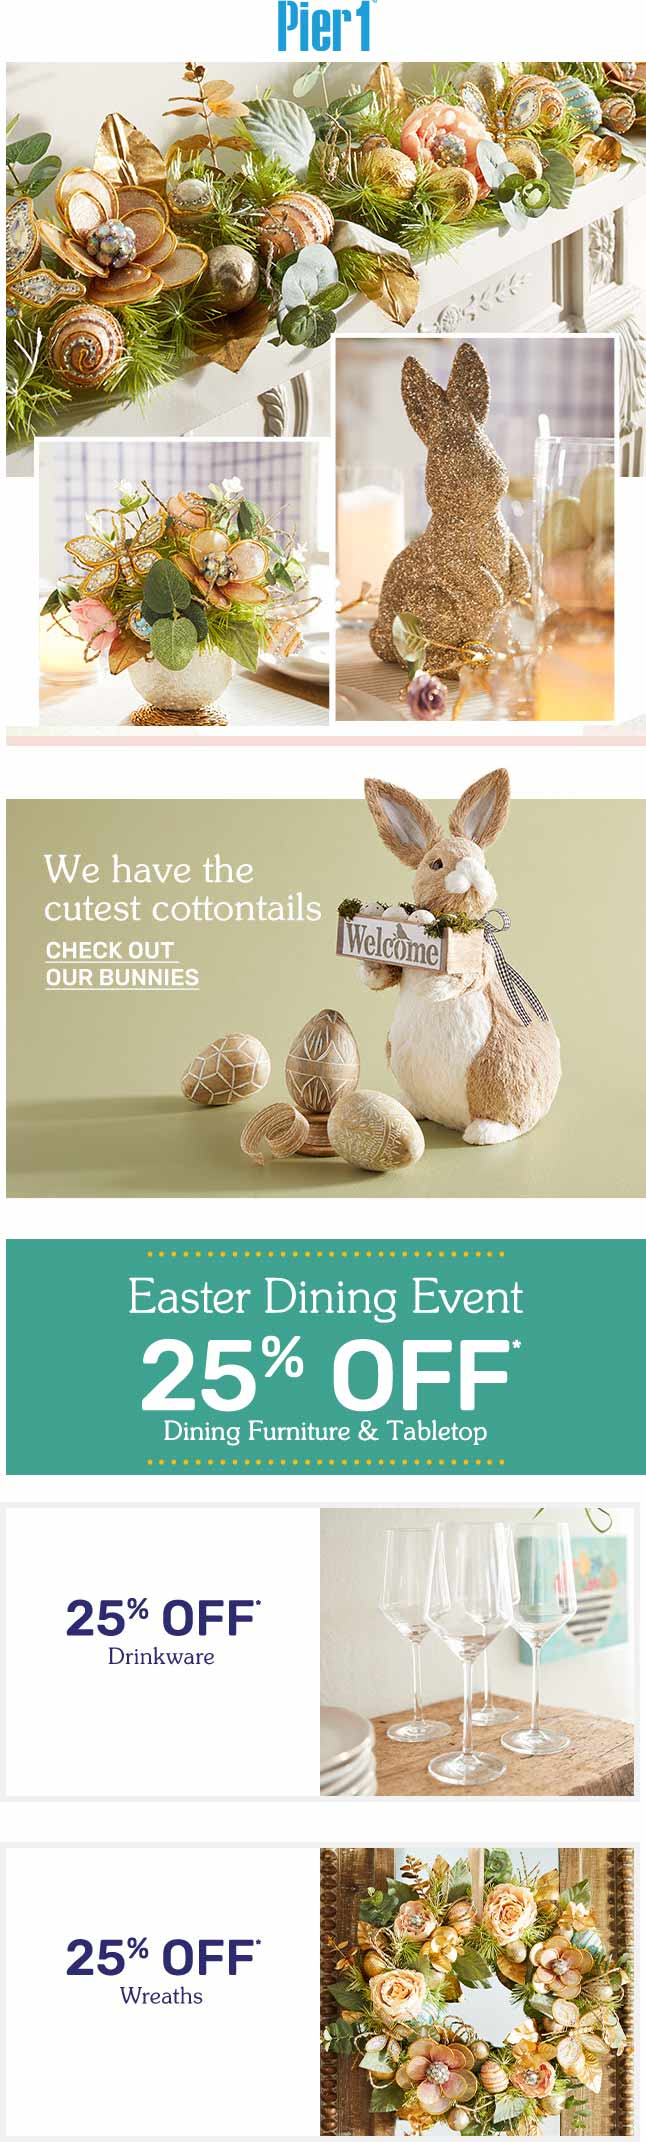 Pier 1 Coupon November 2019 25% off Easter at Pier 1, ditto online